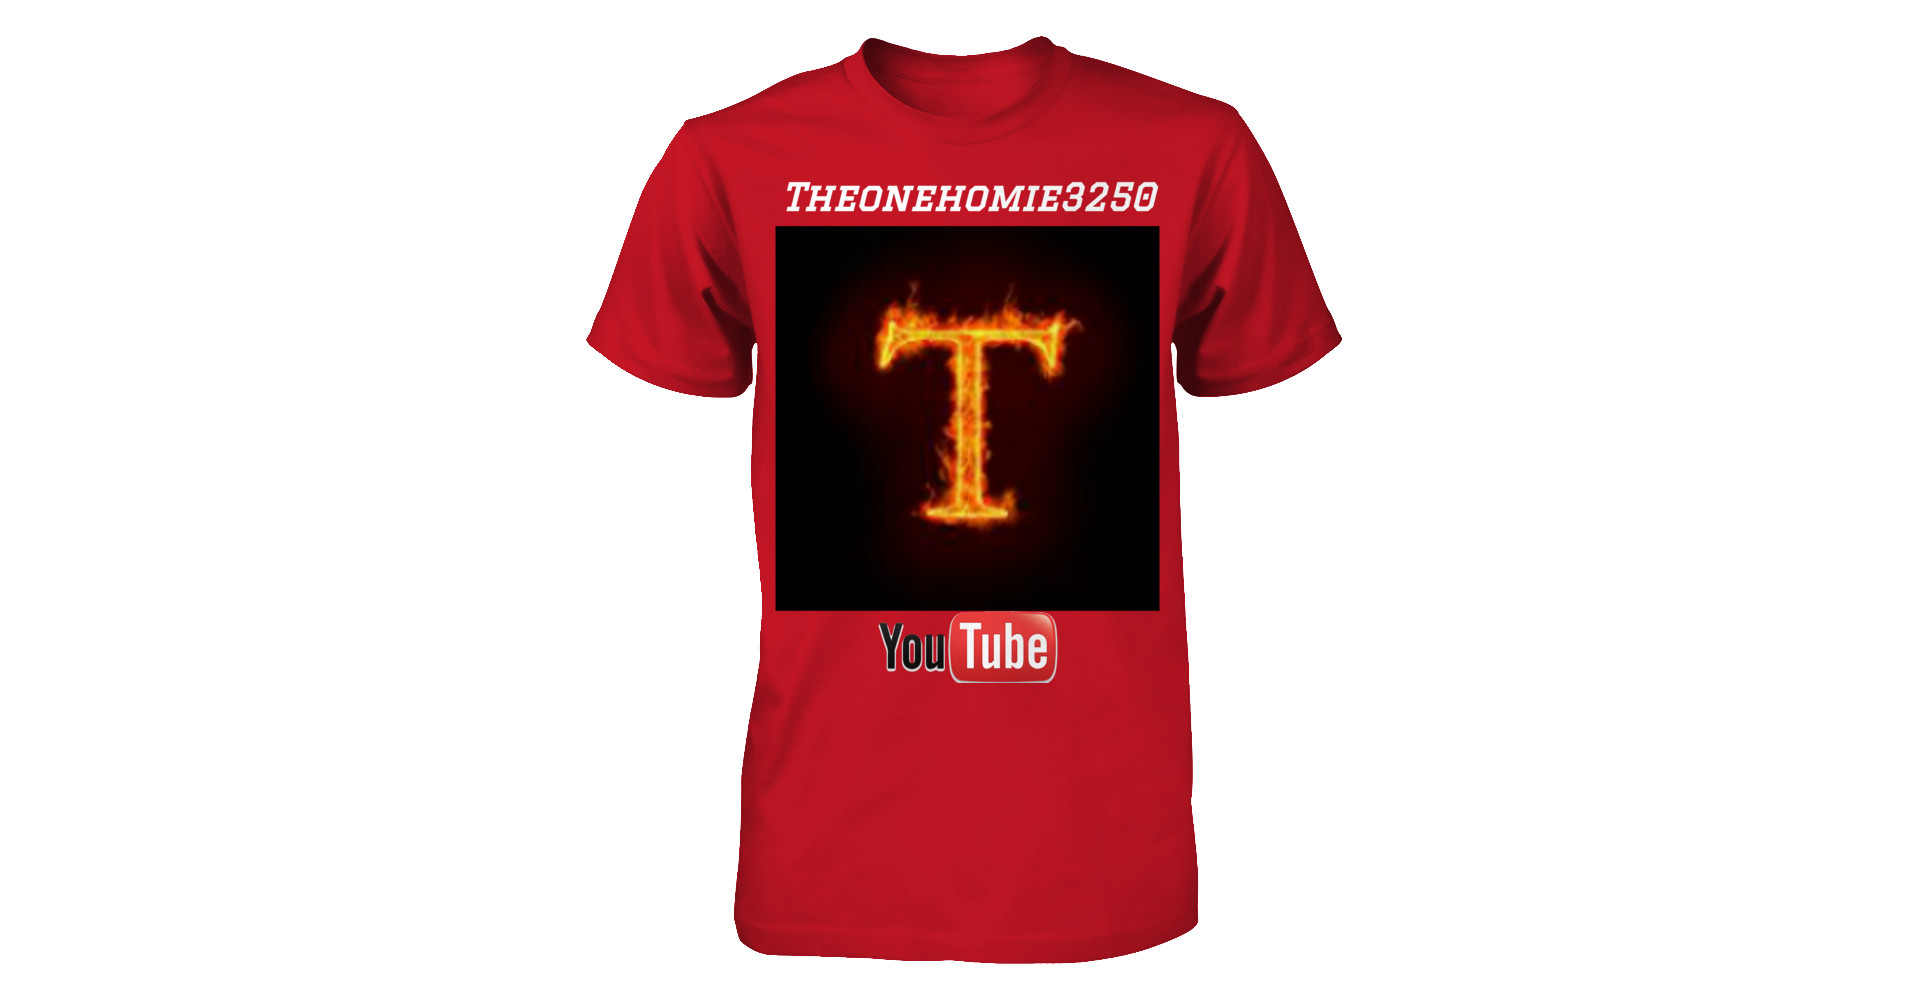 thehomie3250 youtube t shirt represent. Black Bedroom Furniture Sets. Home Design Ideas